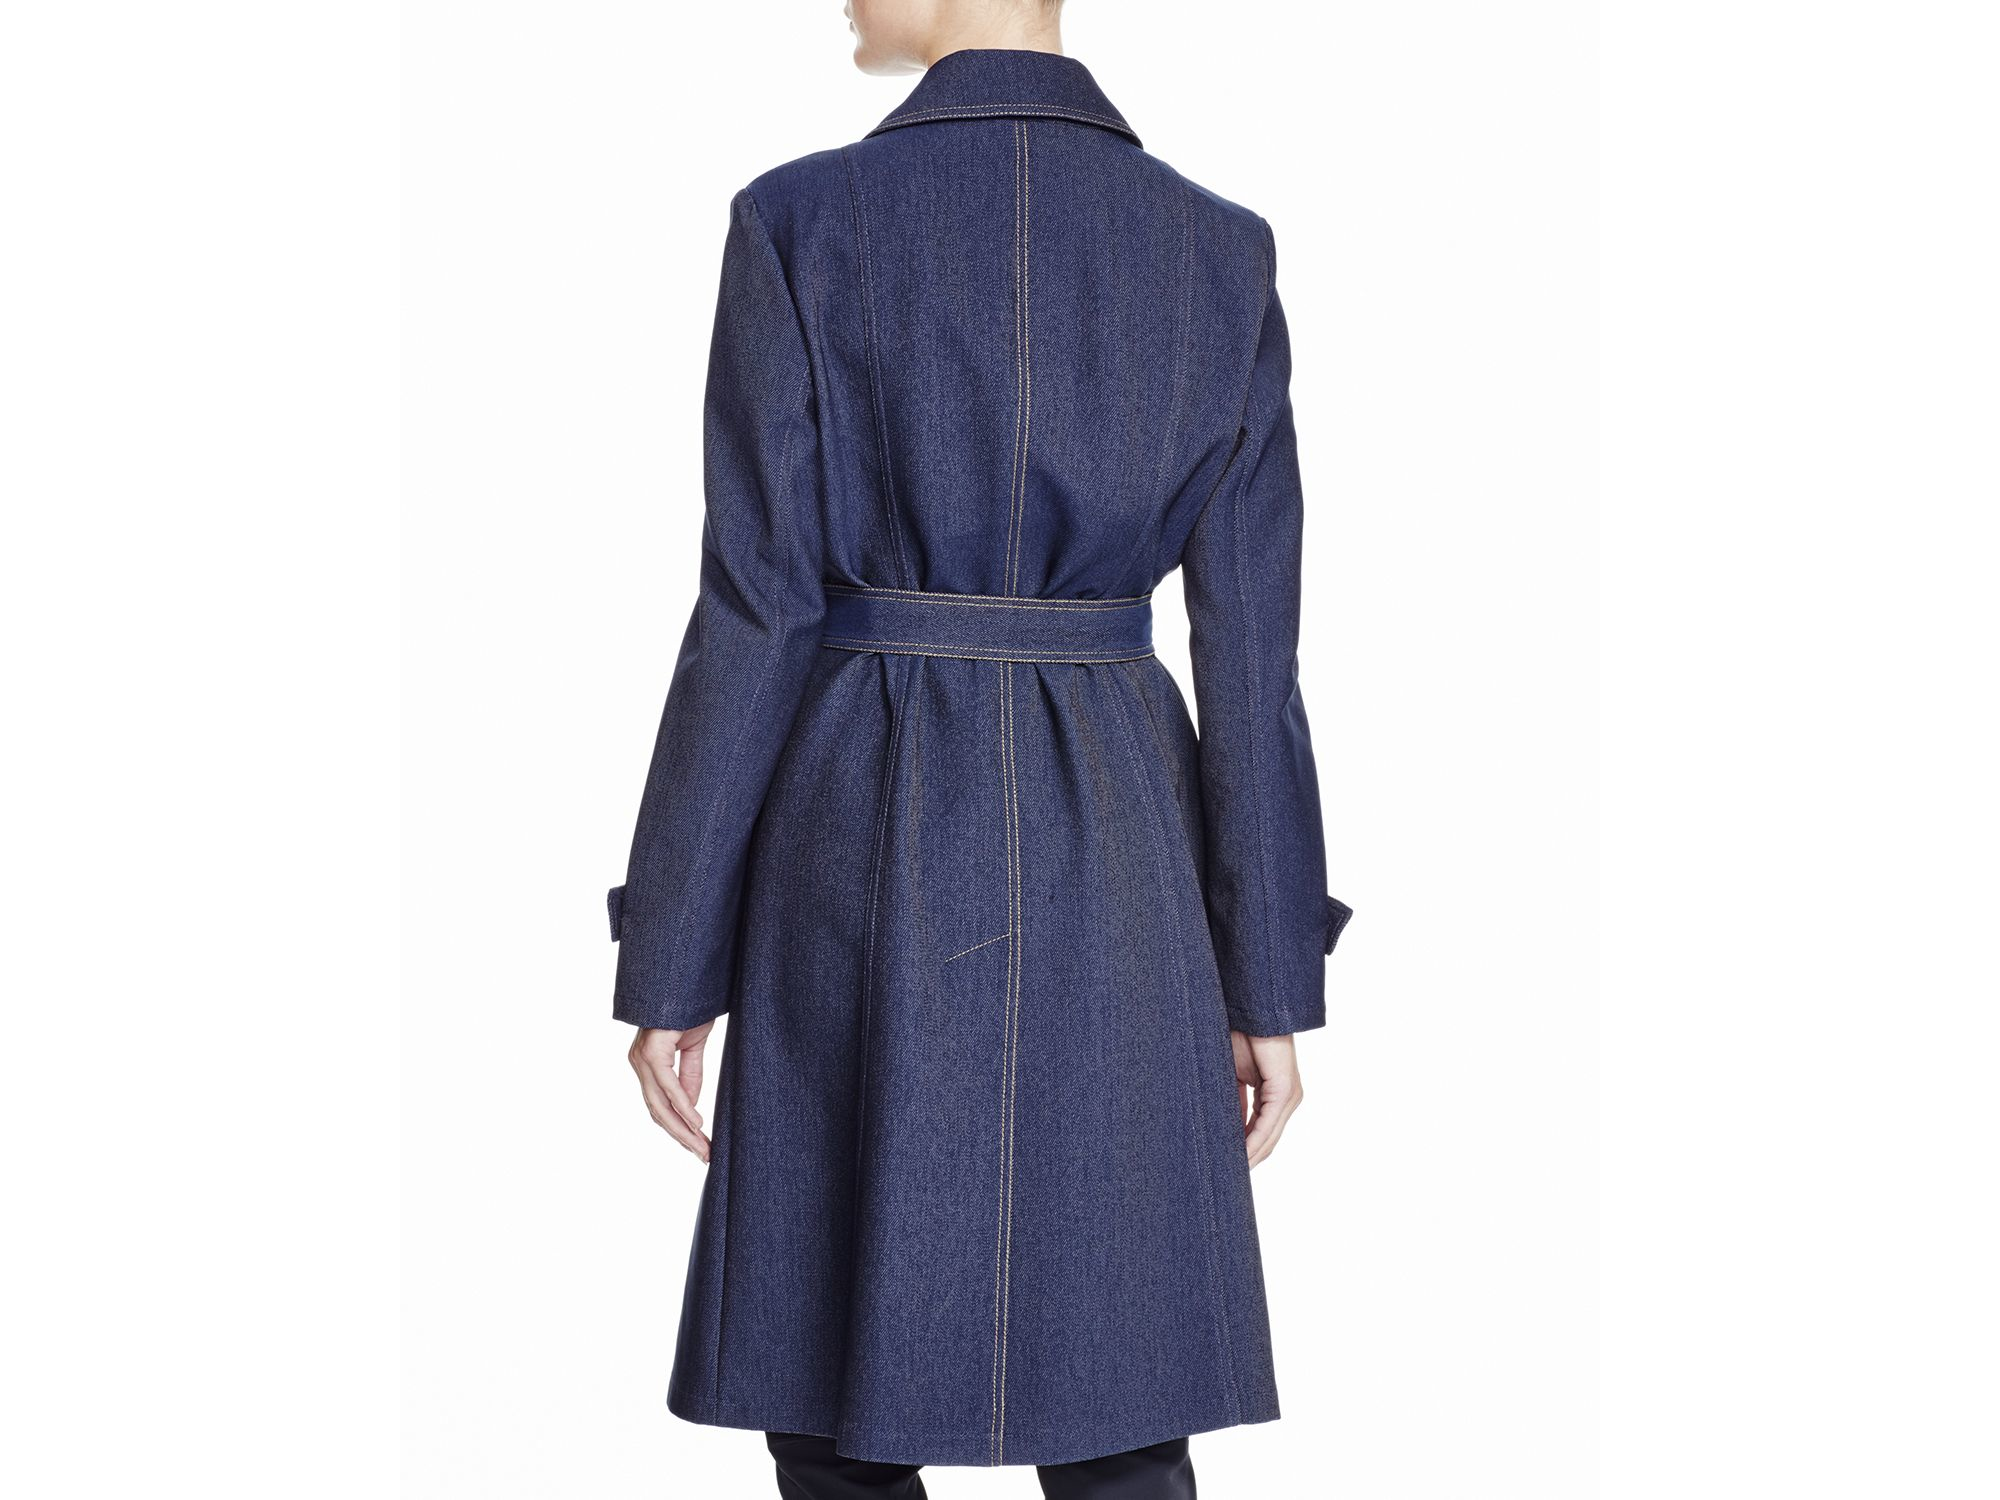 Shop the Women's Denim Trench Coat at whomeverf.cf and see the entire selection of Women's Jackets. Free Shipping Available.